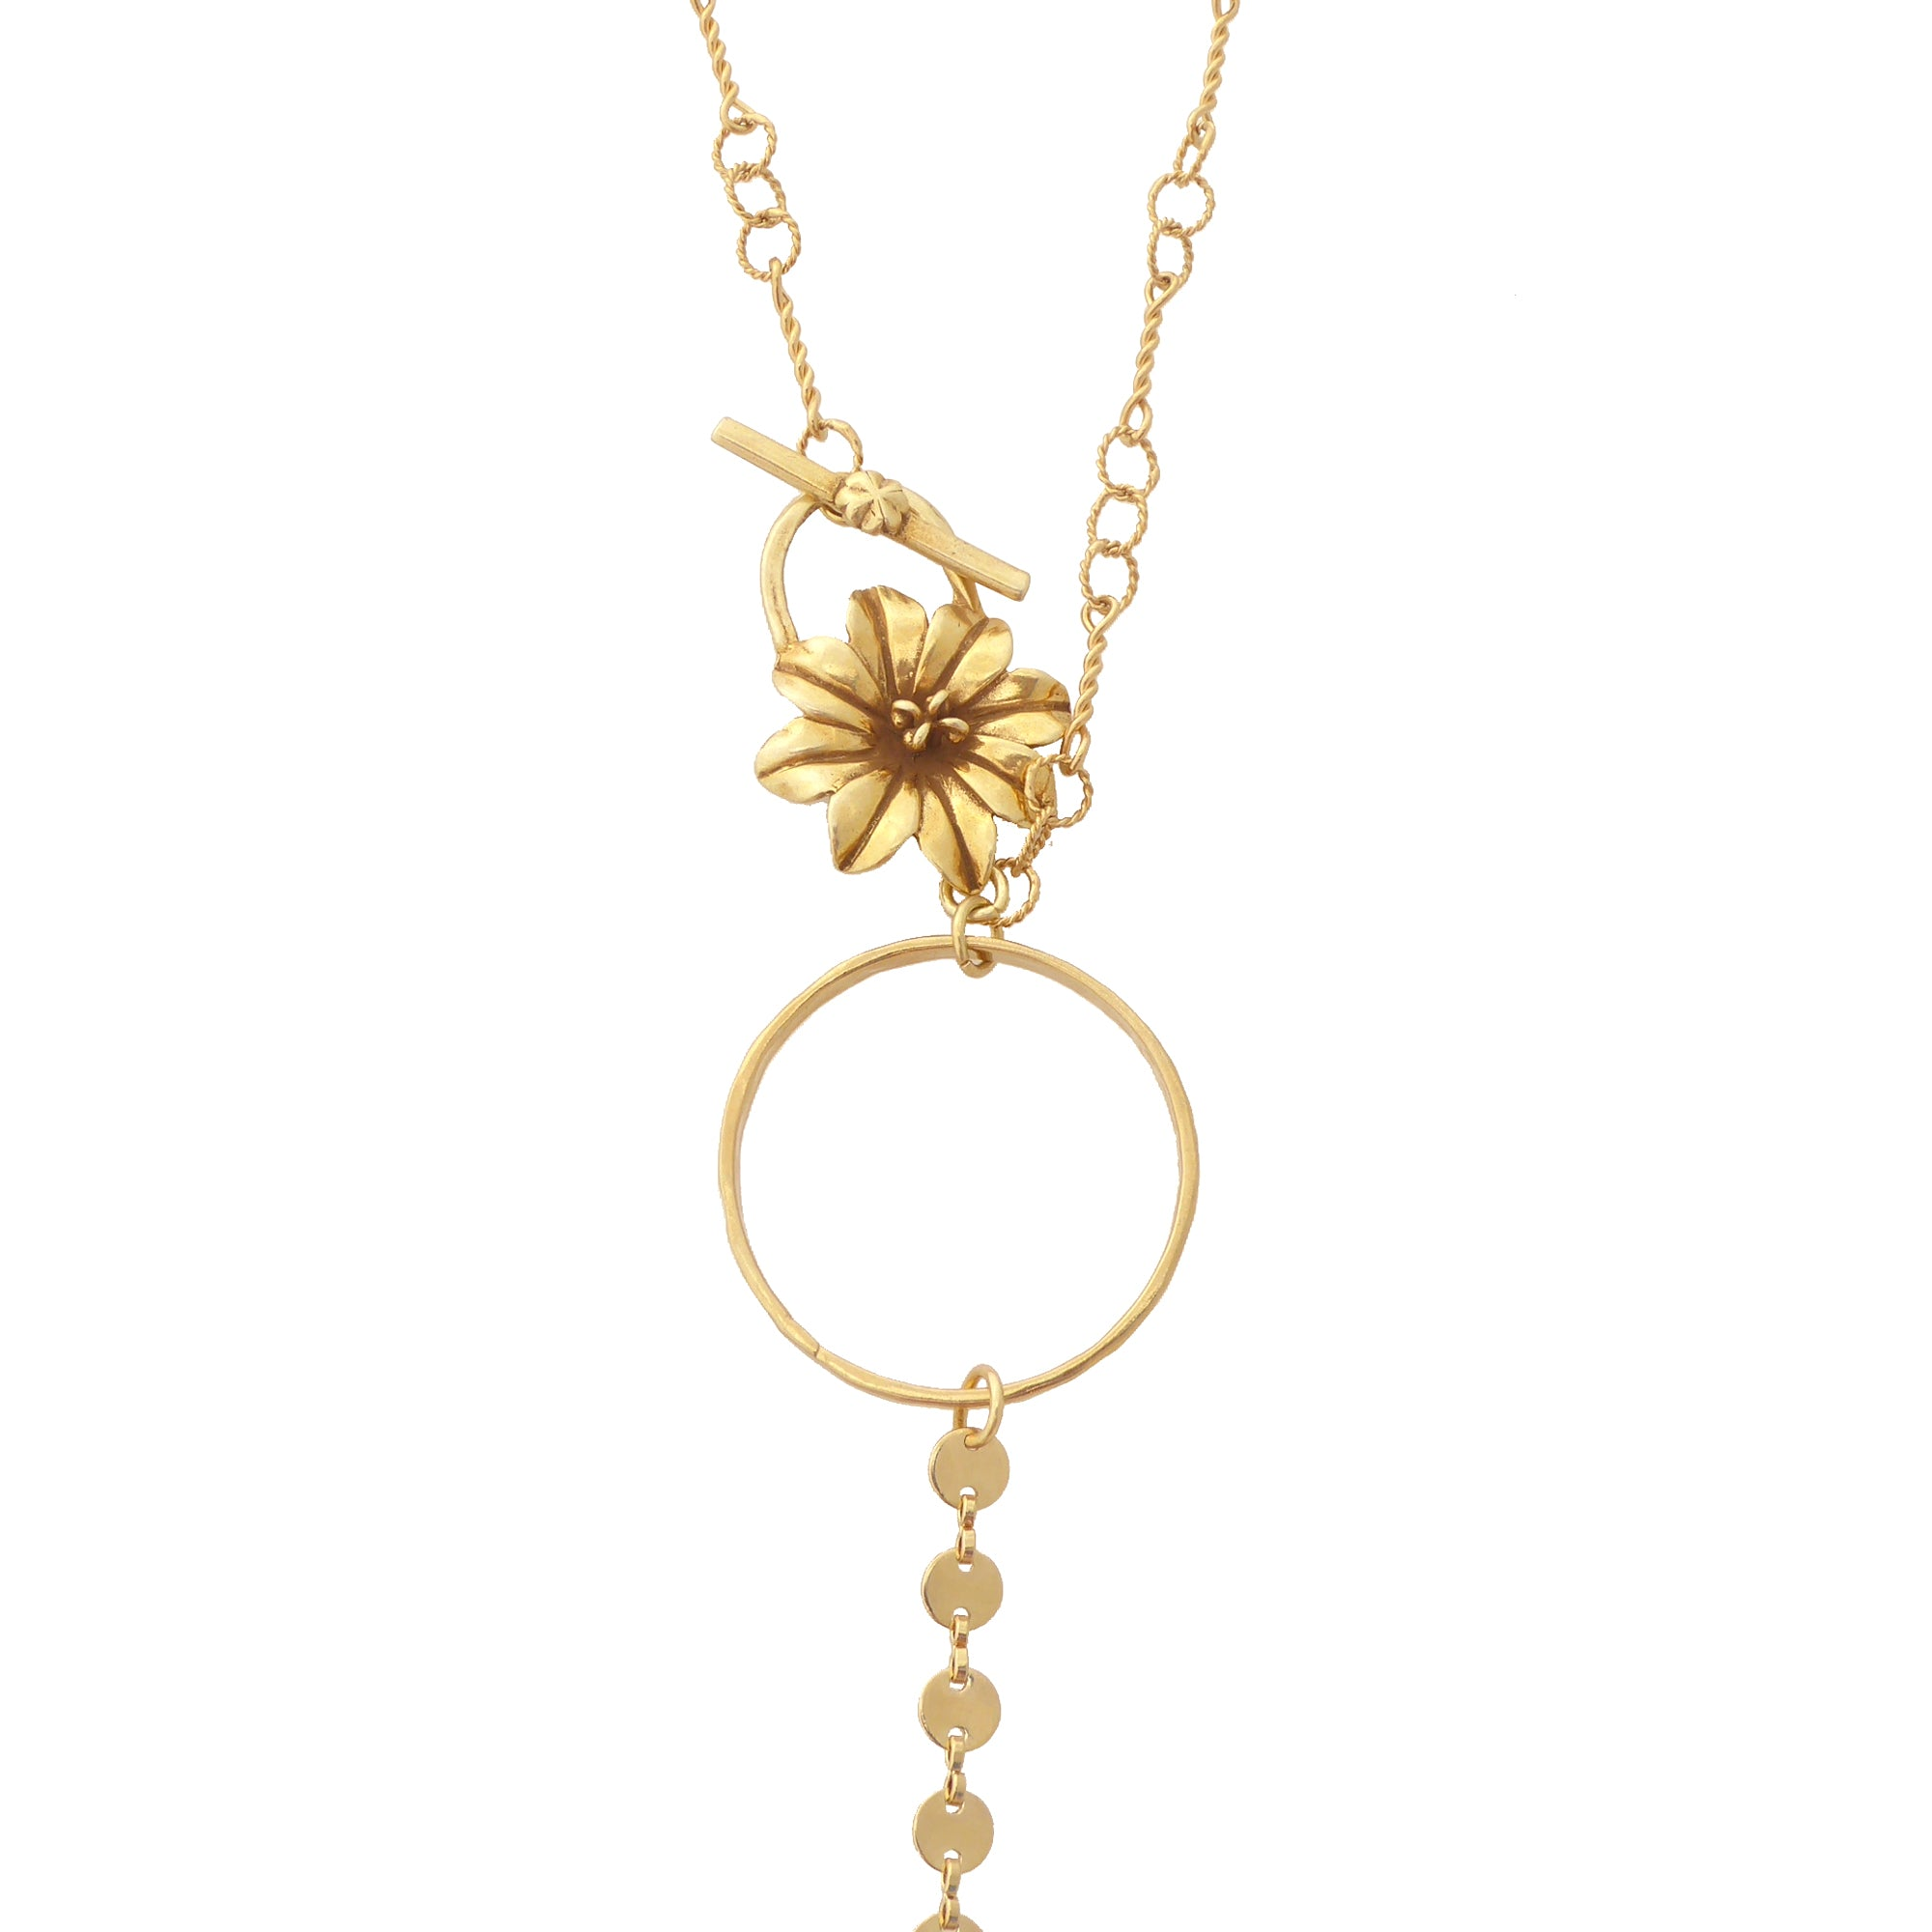 Daisy toggle necklace